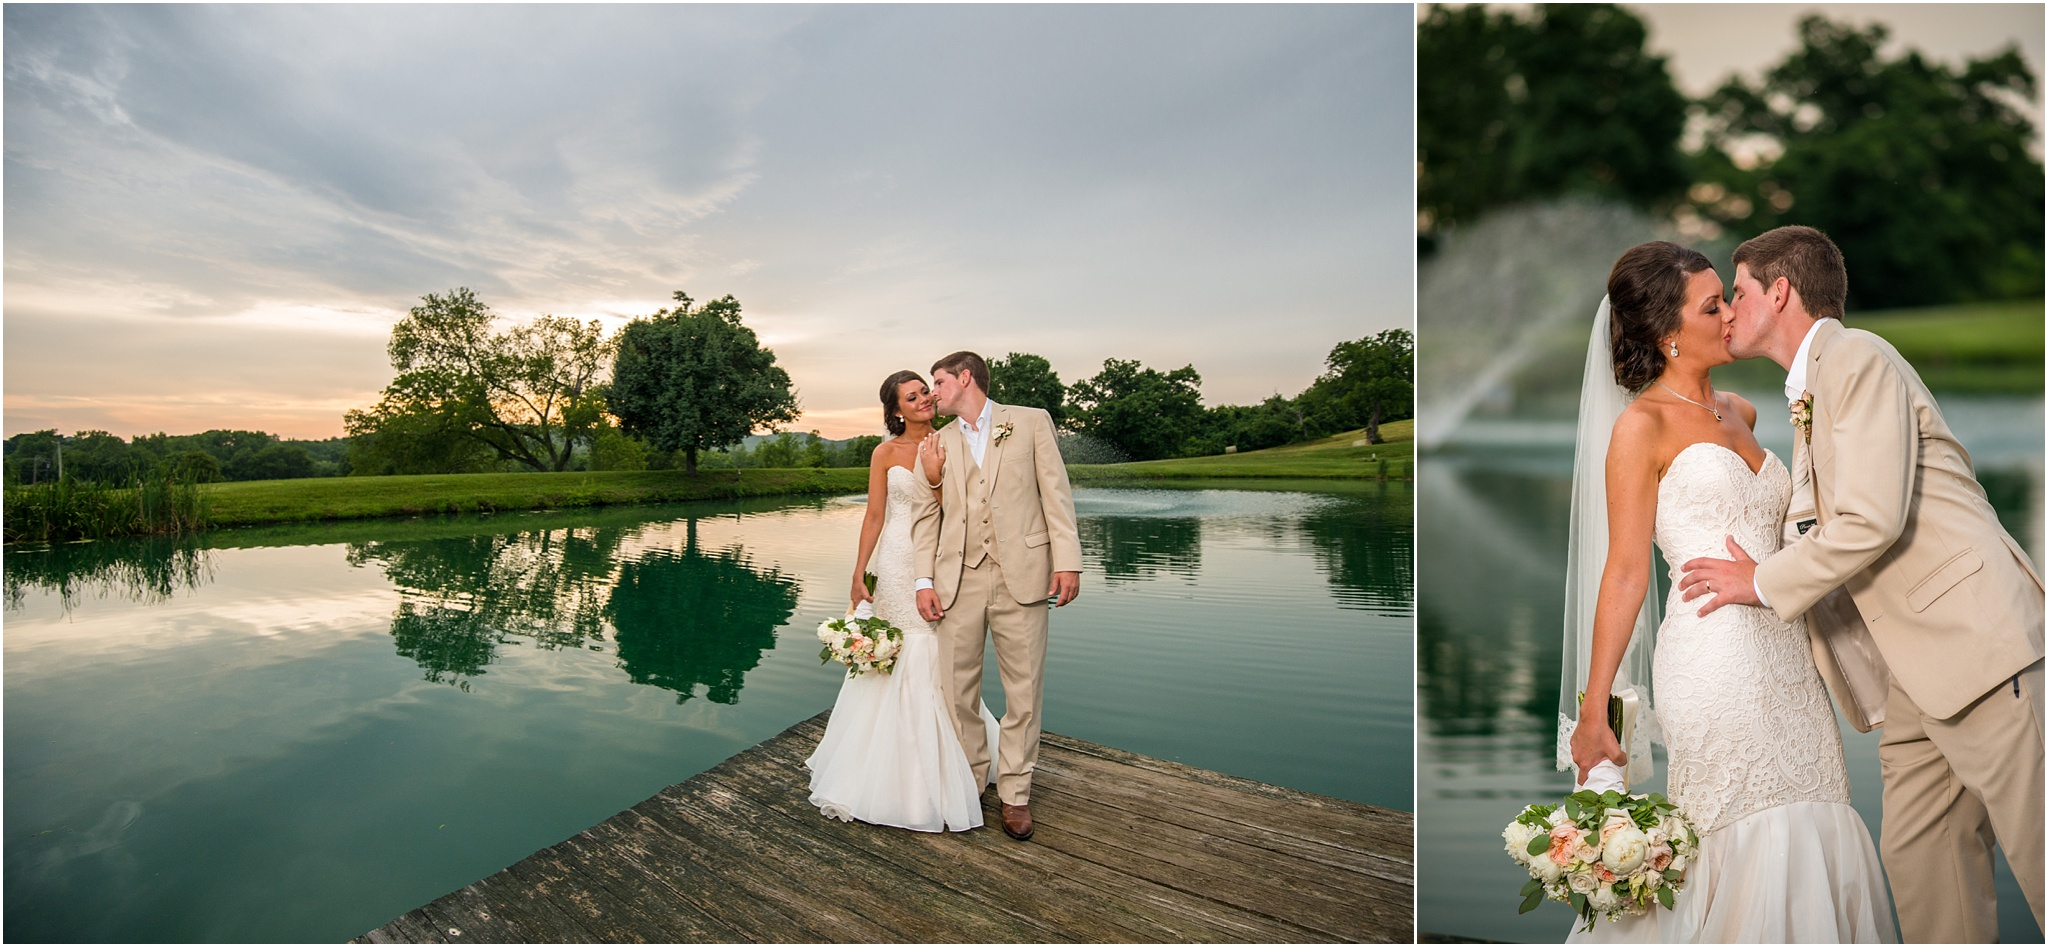 Greg Smit Photography Nashville wedding photographer Mint Springs Farm 21